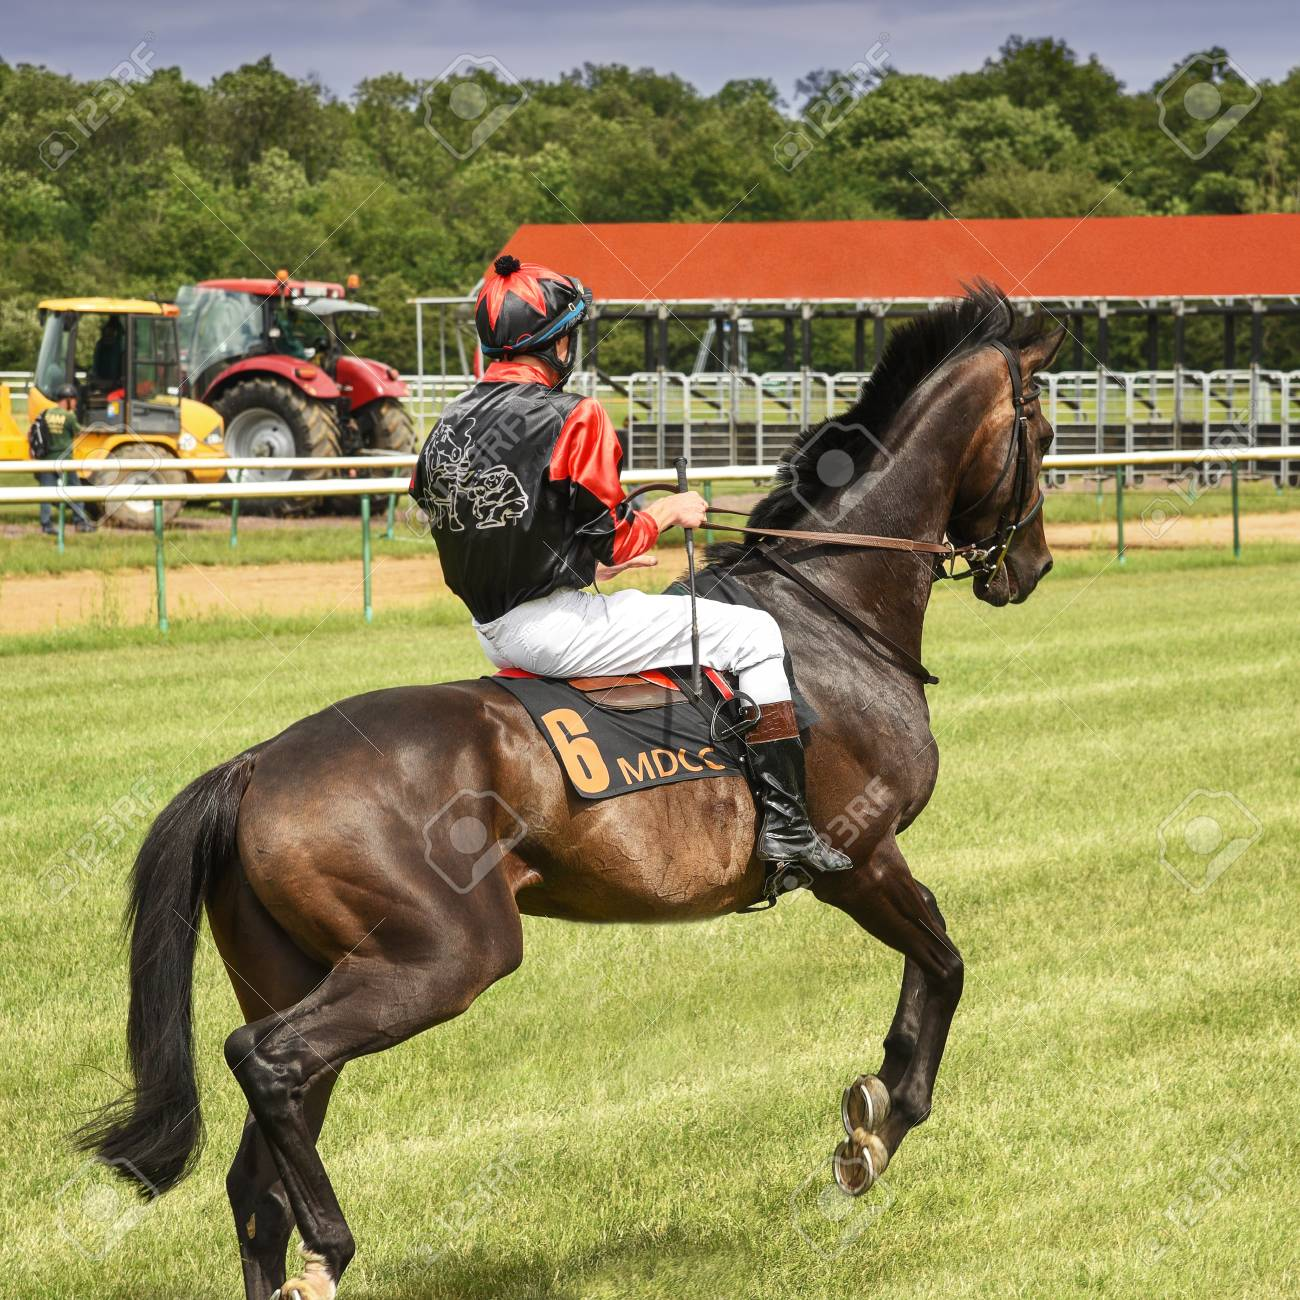 Magdeburg Germany 24 June 2017 Jockey Is Riding On A Dark Stock Photo Picture And Royalty Free Image Image 115967258